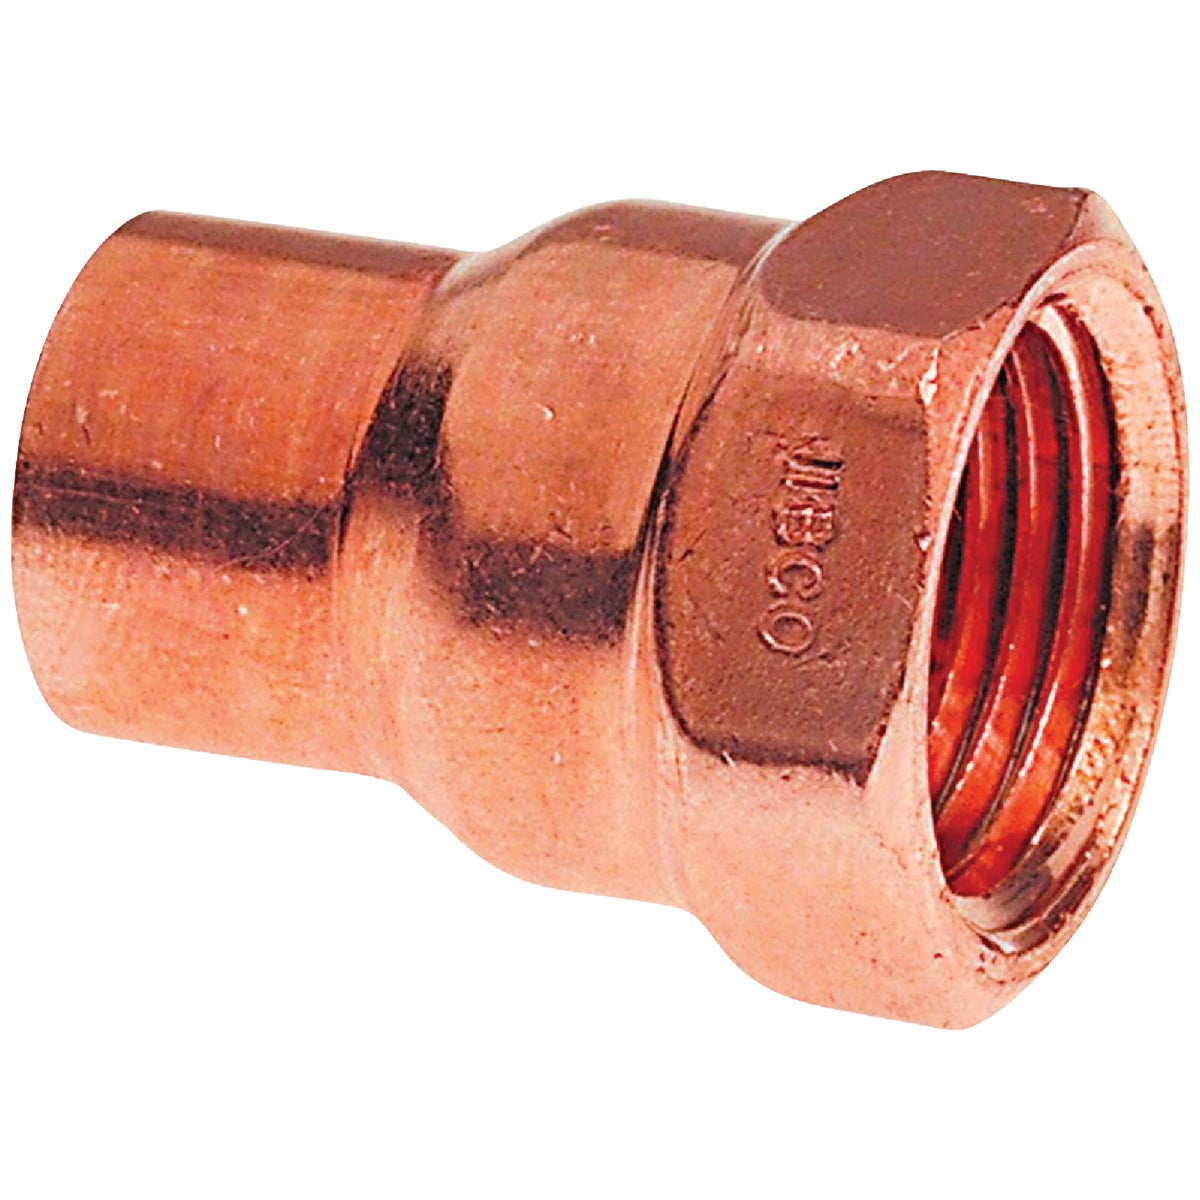 "3/4""CX1/2""F ADAPTER - 30156 by Elkhart Prod Corp"